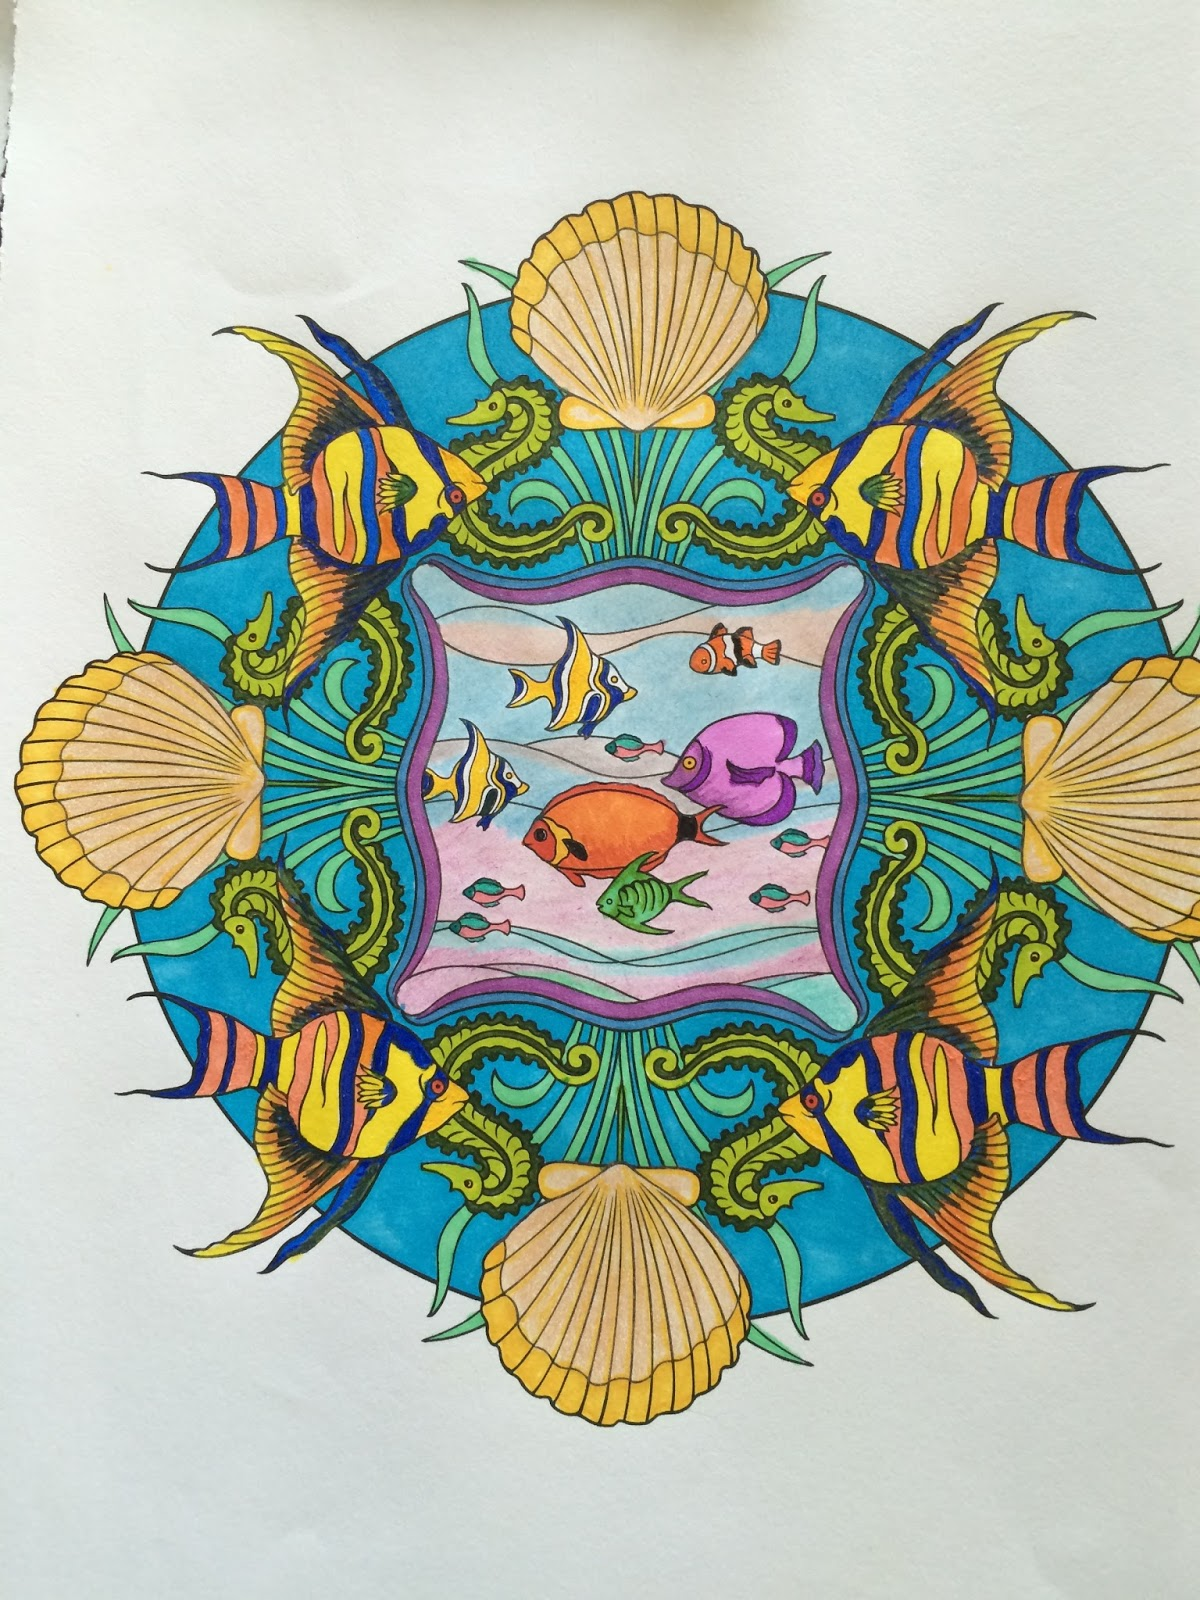 A Mandala Coloring Page Completed By The Jersey Grandpa